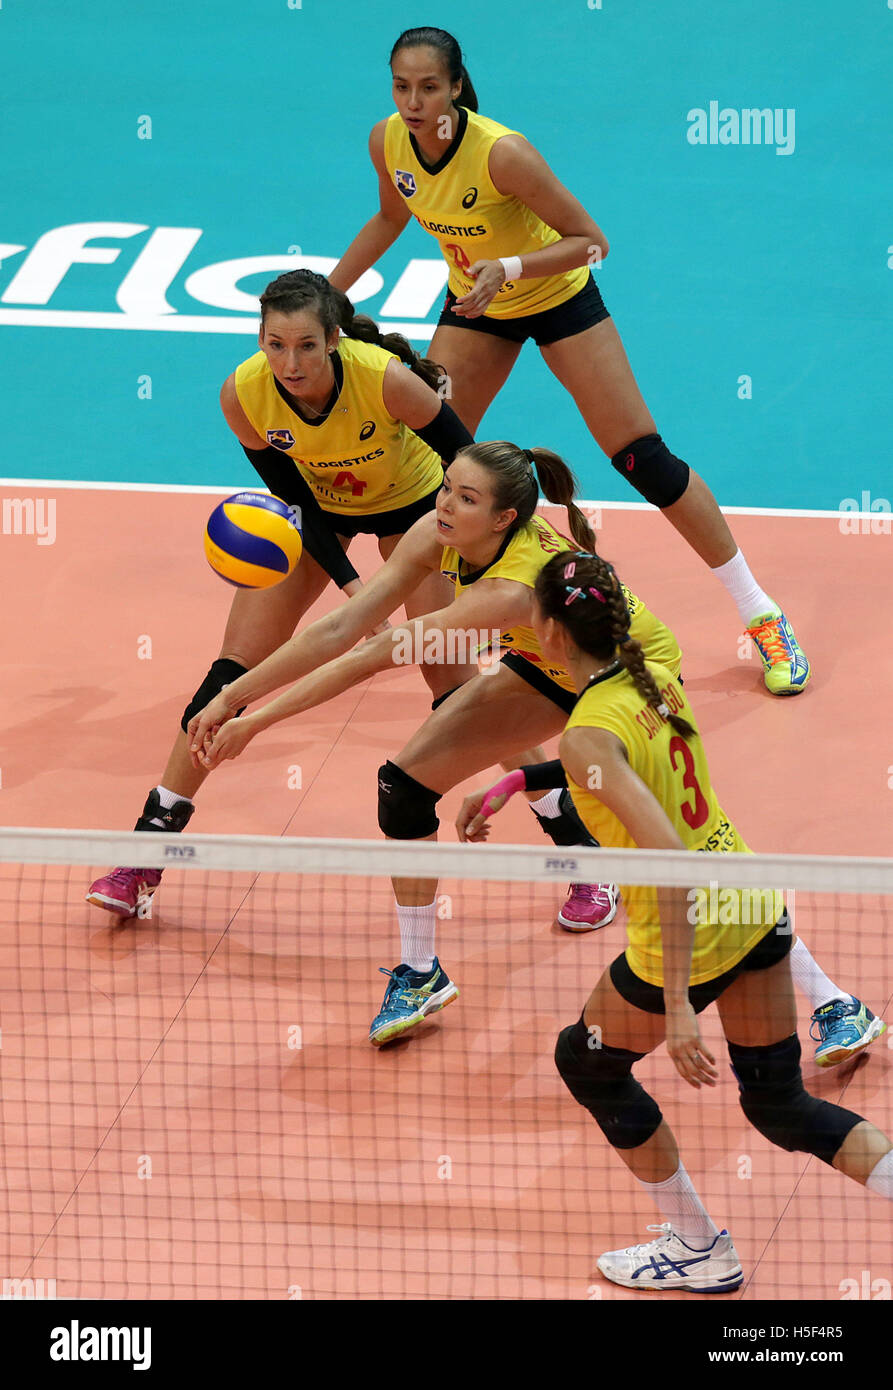 Pasay City, Philippines. 20th Oct, 2016. Players of PSL-F2 Logistics Manila compete against Pomi Casalmaggiore during - Stock Image